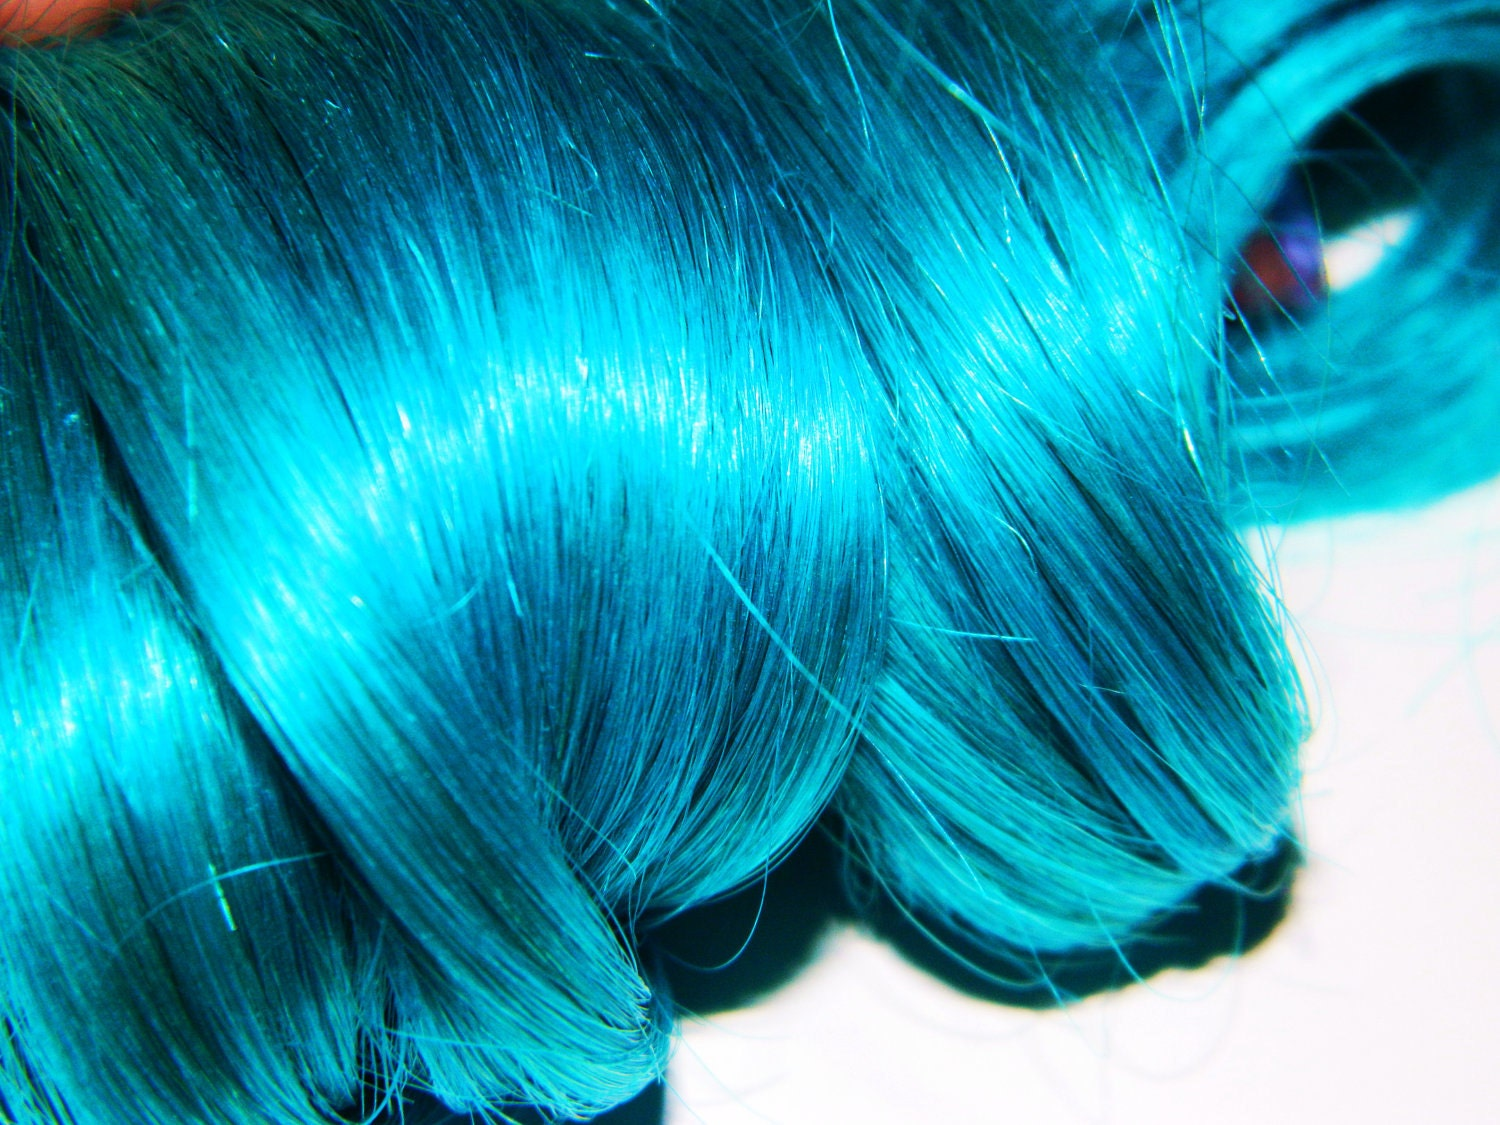 Adesivos De Parede Kombi ~ Turquoise Hair Extensions Human Hair Styling Hair Extensions